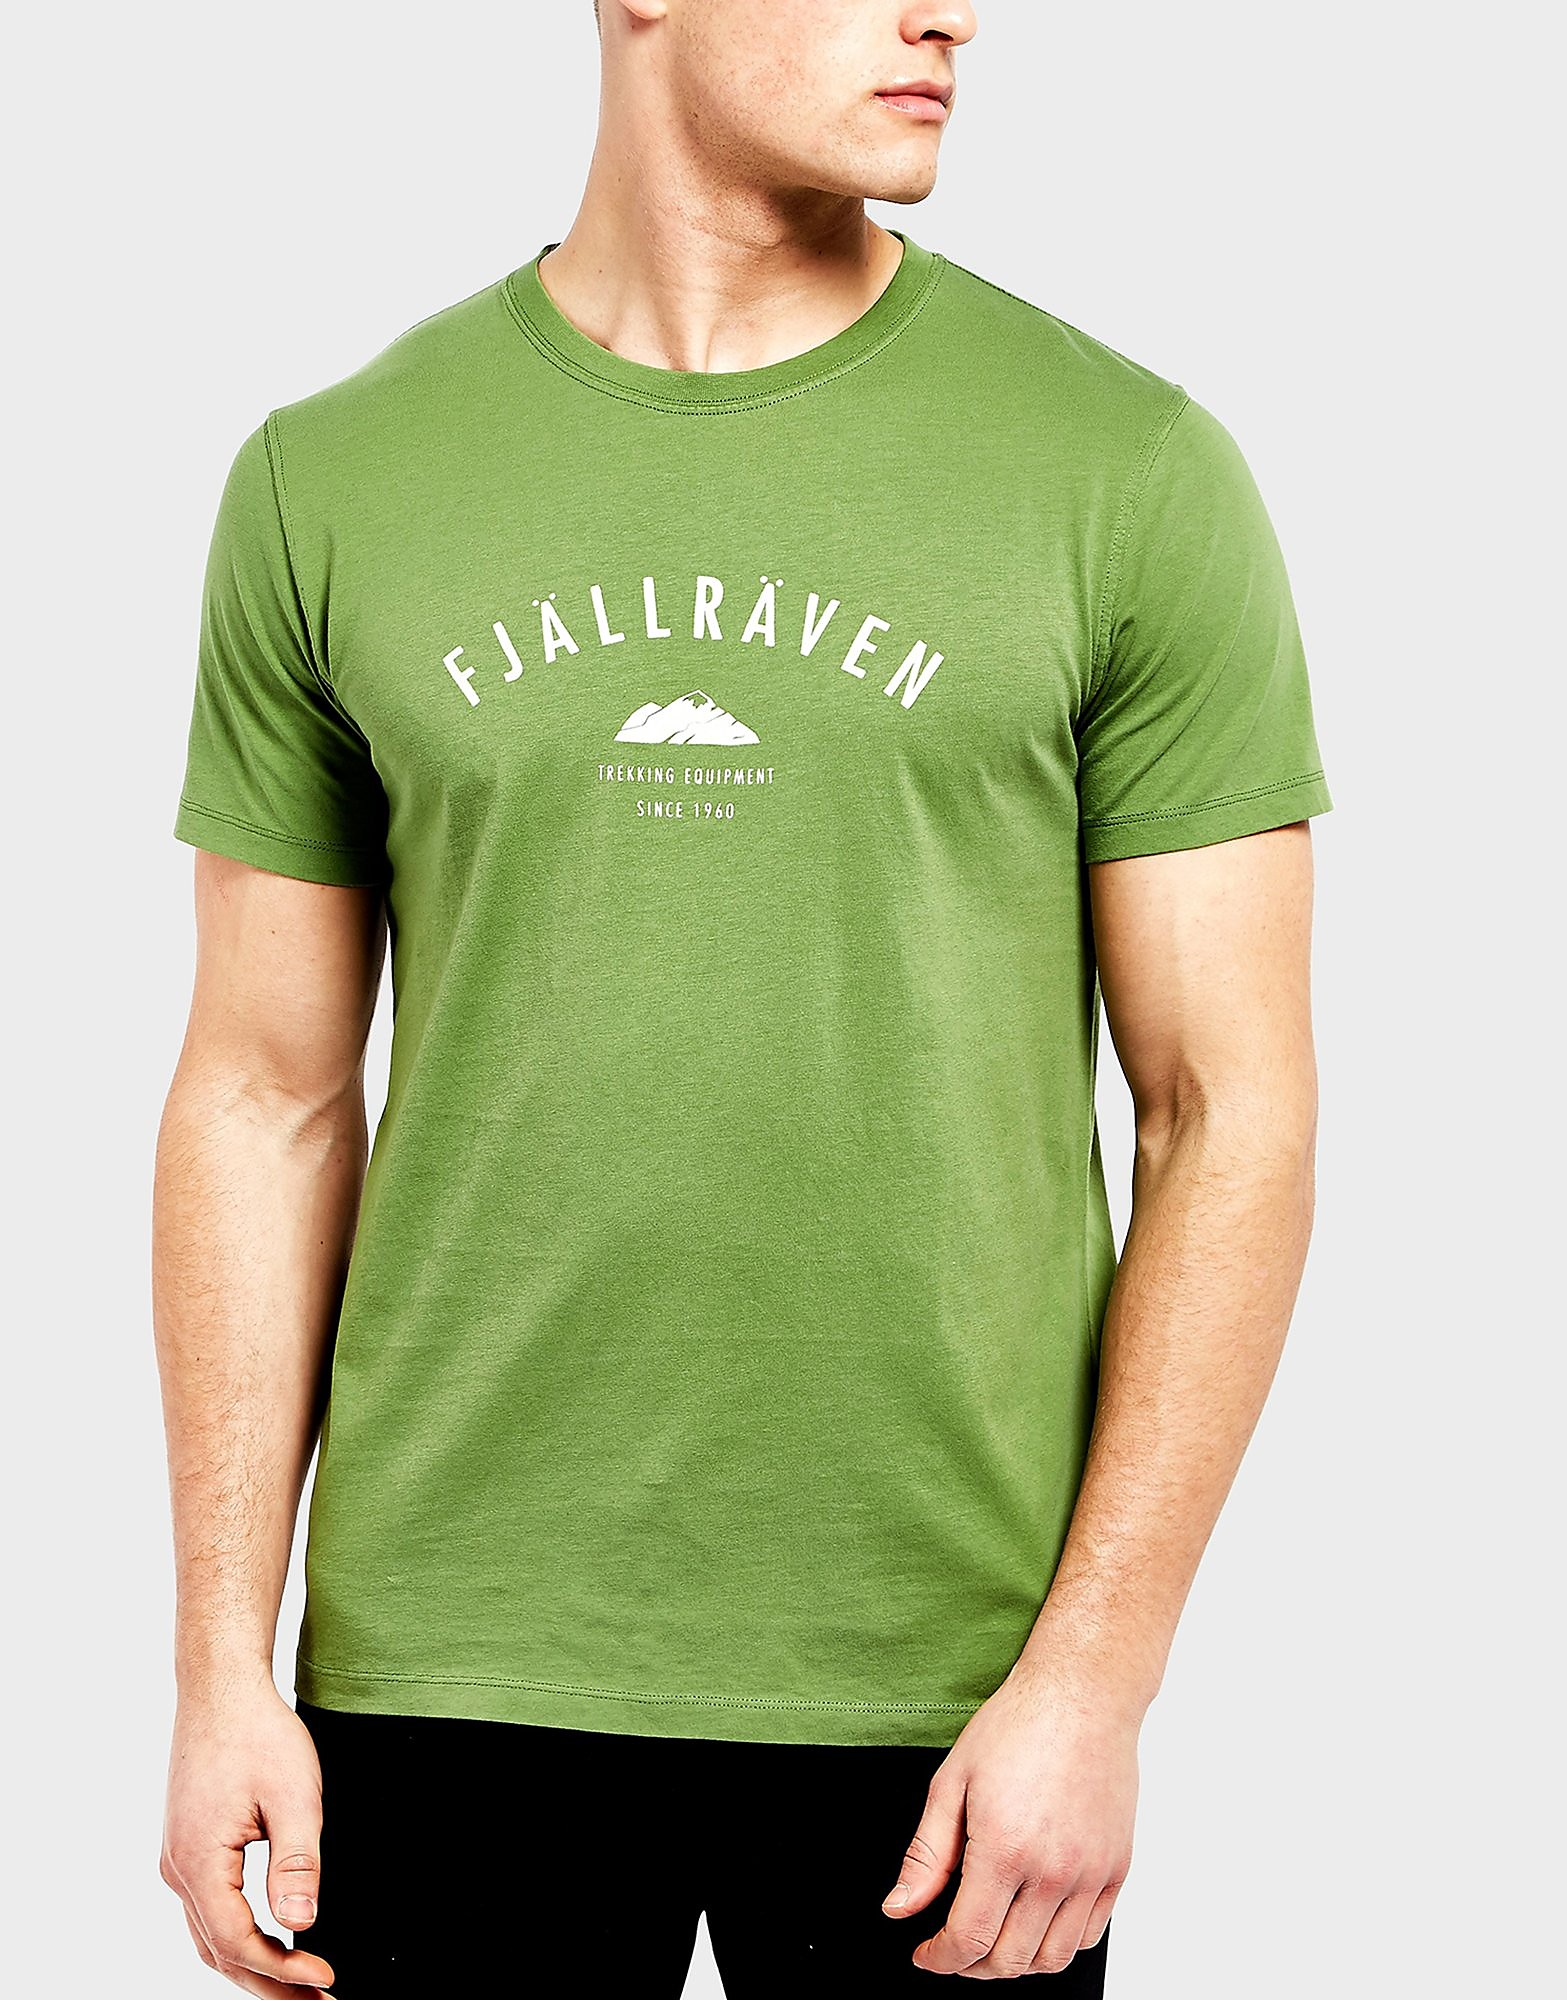 Fjallraven Trekking Short Sleeve T-Shirt